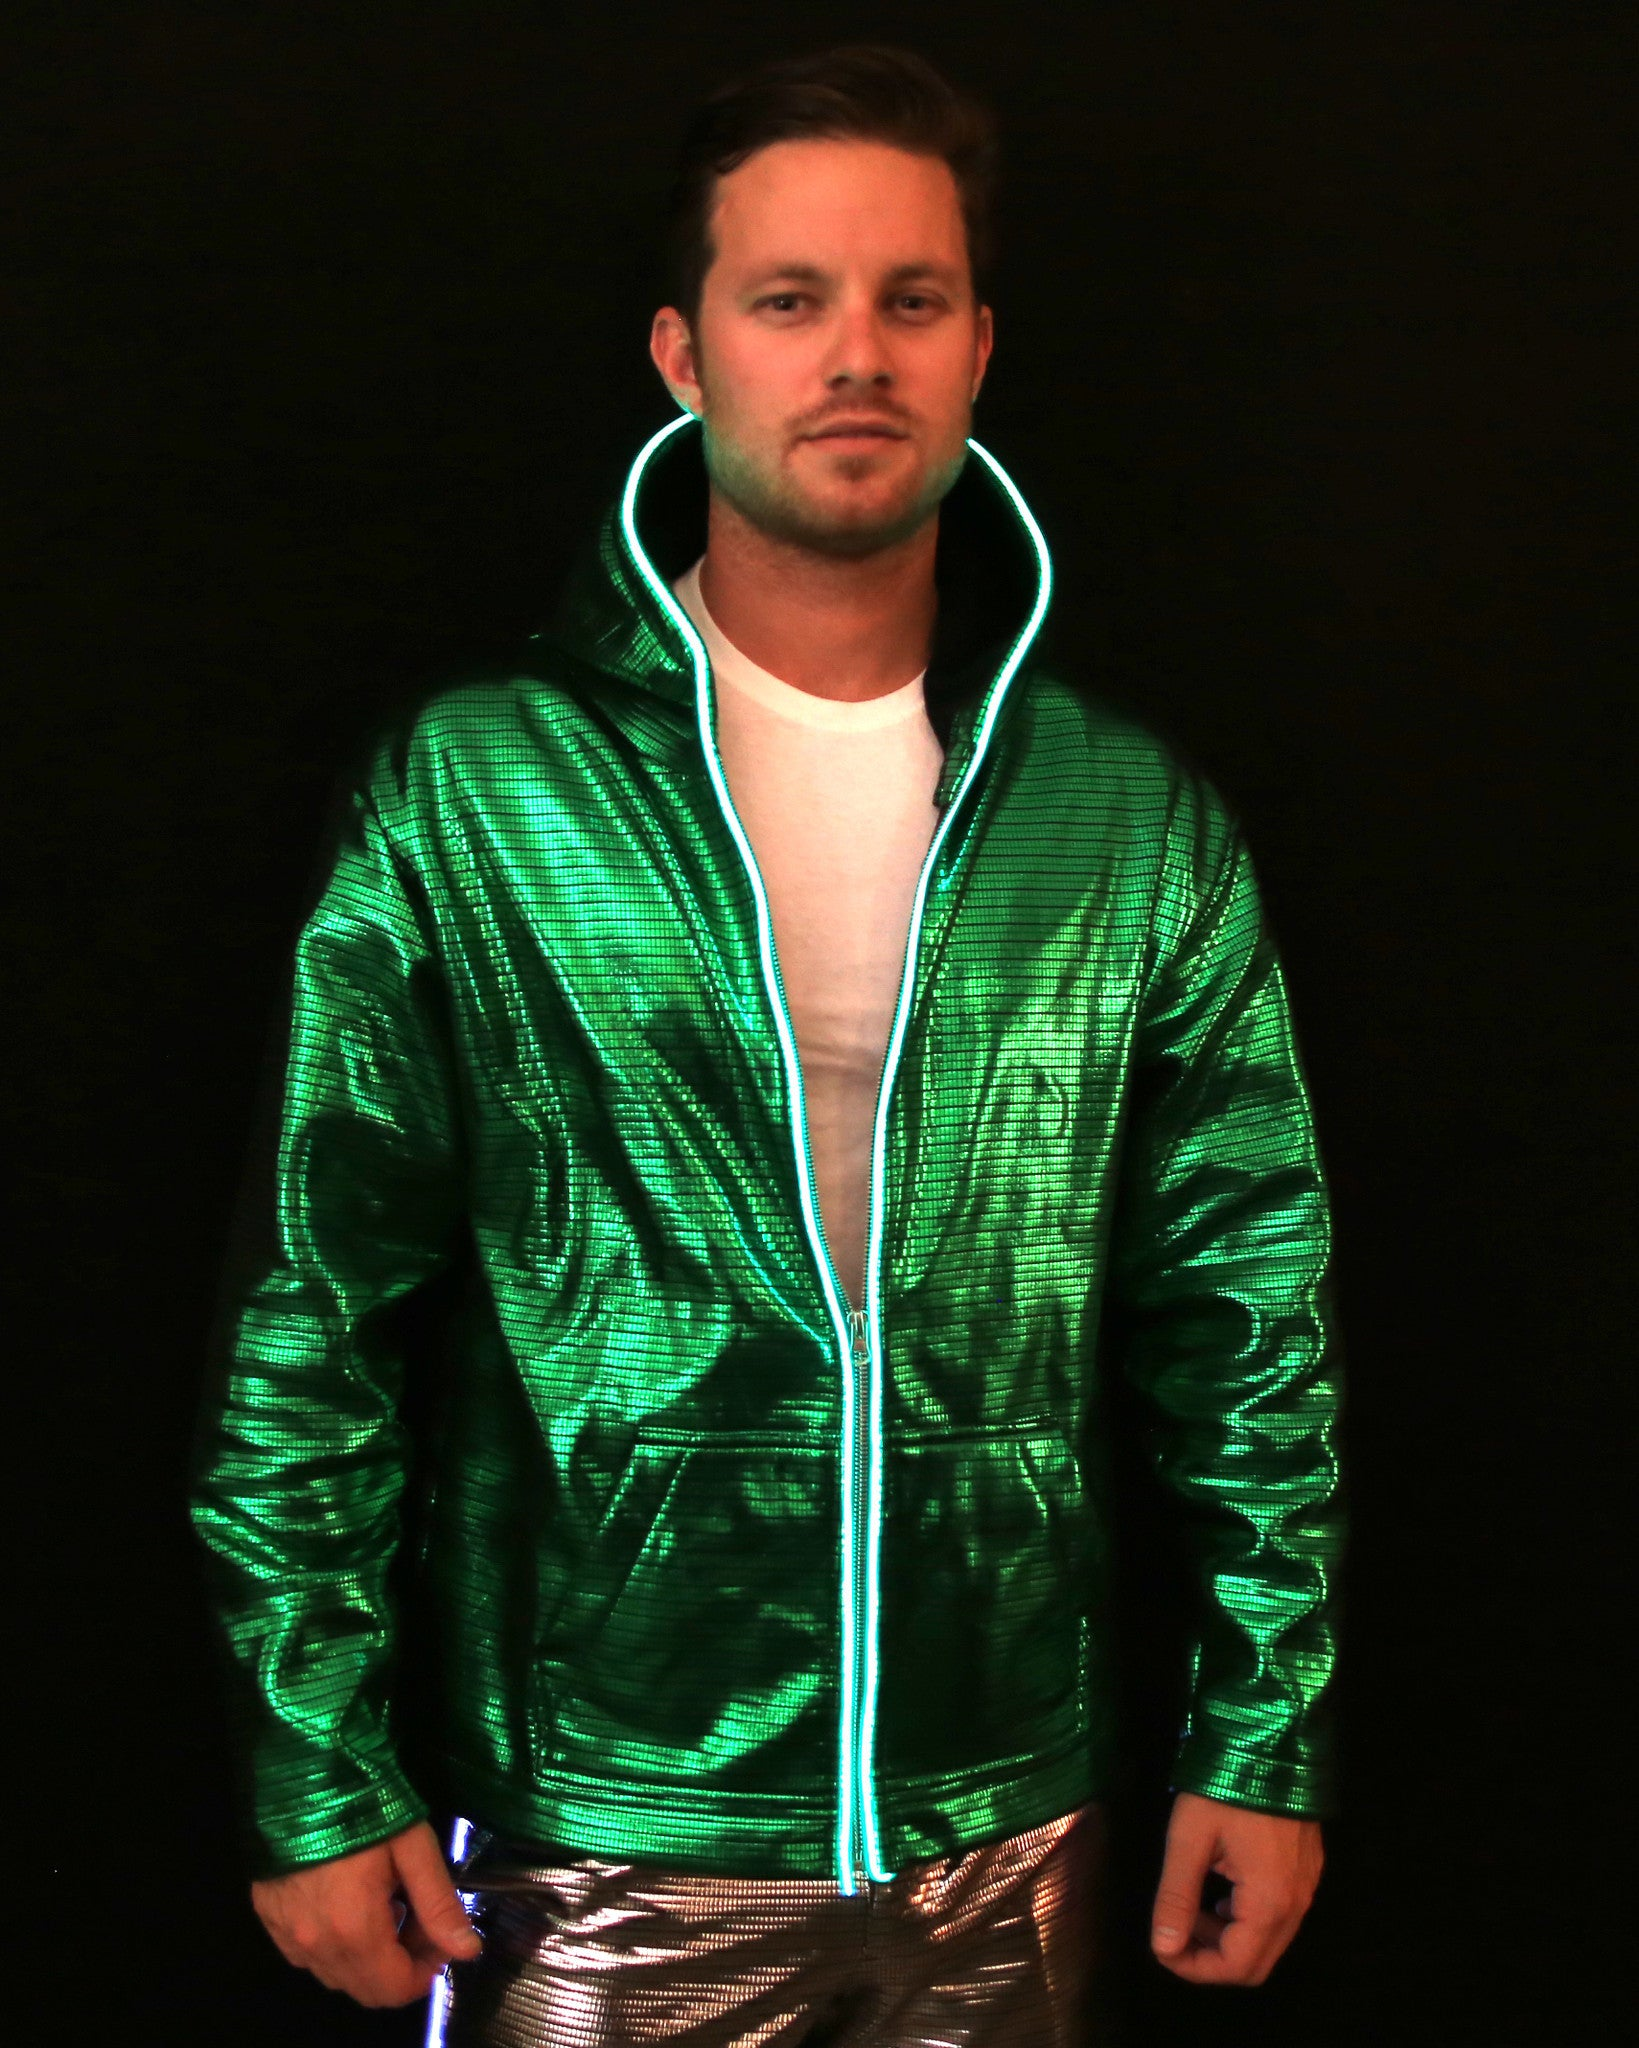 Light Up Electro Hoodie - Electric Styles | World's Number 1 Light Up Shoe Store - {product_type}} - Small / Green - 6